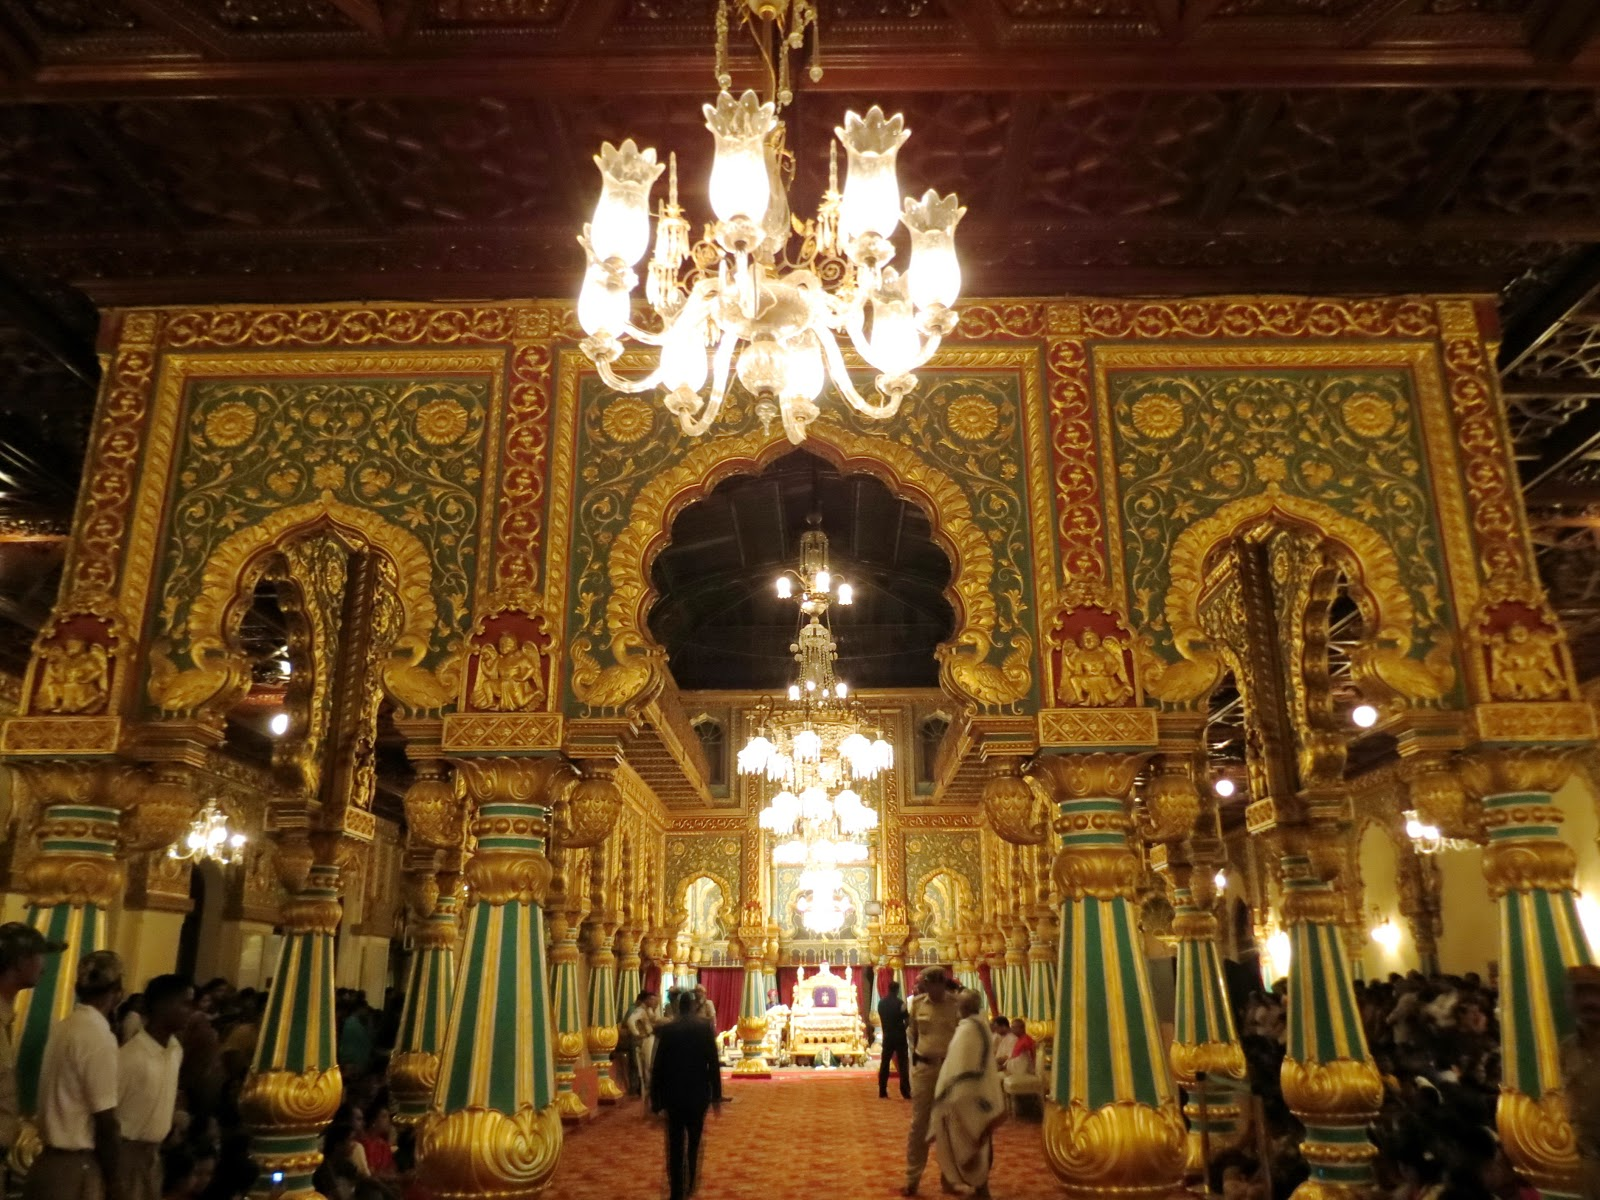 The Golden Throne That Maharaja Of Mysore Used To Occupy In Days Kingdom Is Perhaps Most Visible Symbol Grandeur